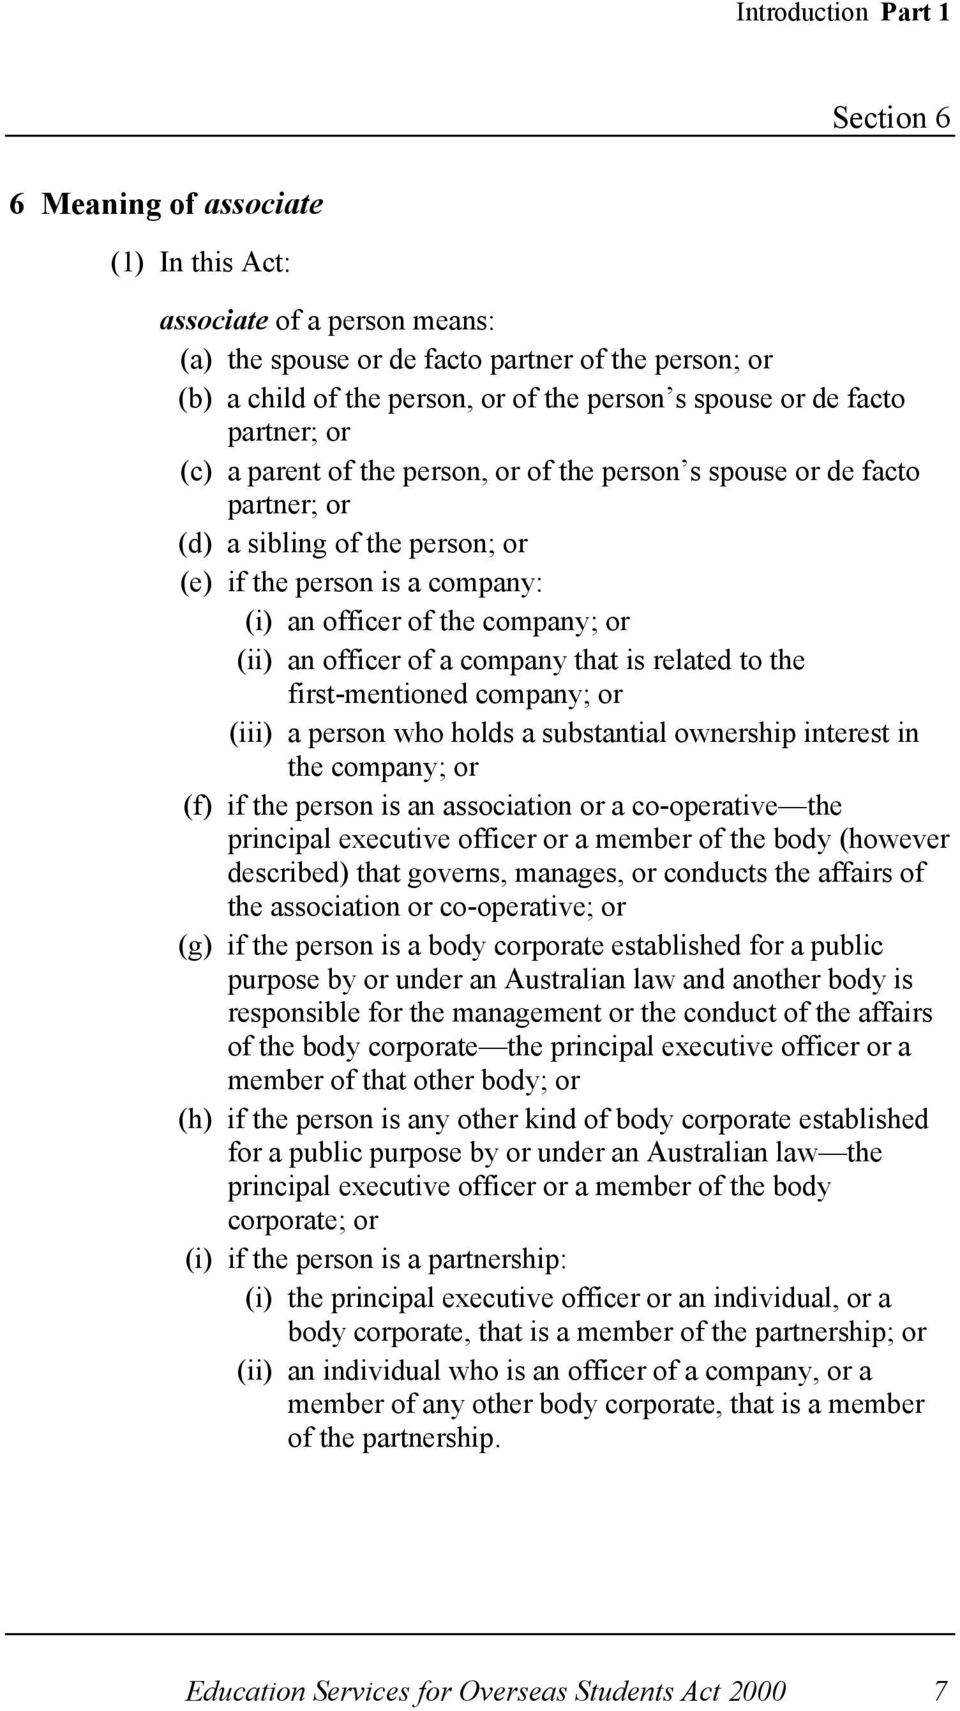 company; or (ii) an officer of a company that is related to the first-mentioned company; or (iii) a person who holds a substantial ownership interest in the company; or (f) if the person is an